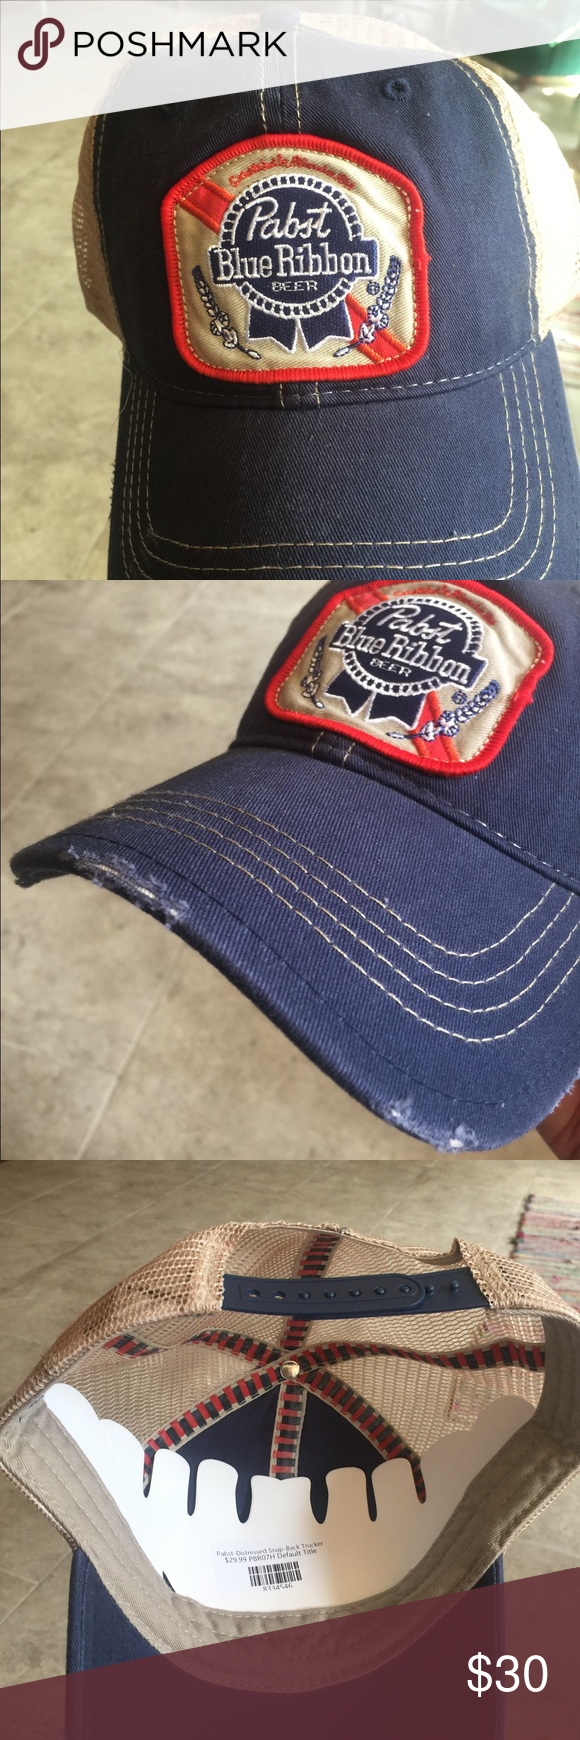 18c69069647 Retro Brand Distressed Pabst Blue Ribbon Hat Distressed Pabst Blue Ribbon  Hat by Retro Brand- Brand New ships straight from boutique Original Retro  Brand ...